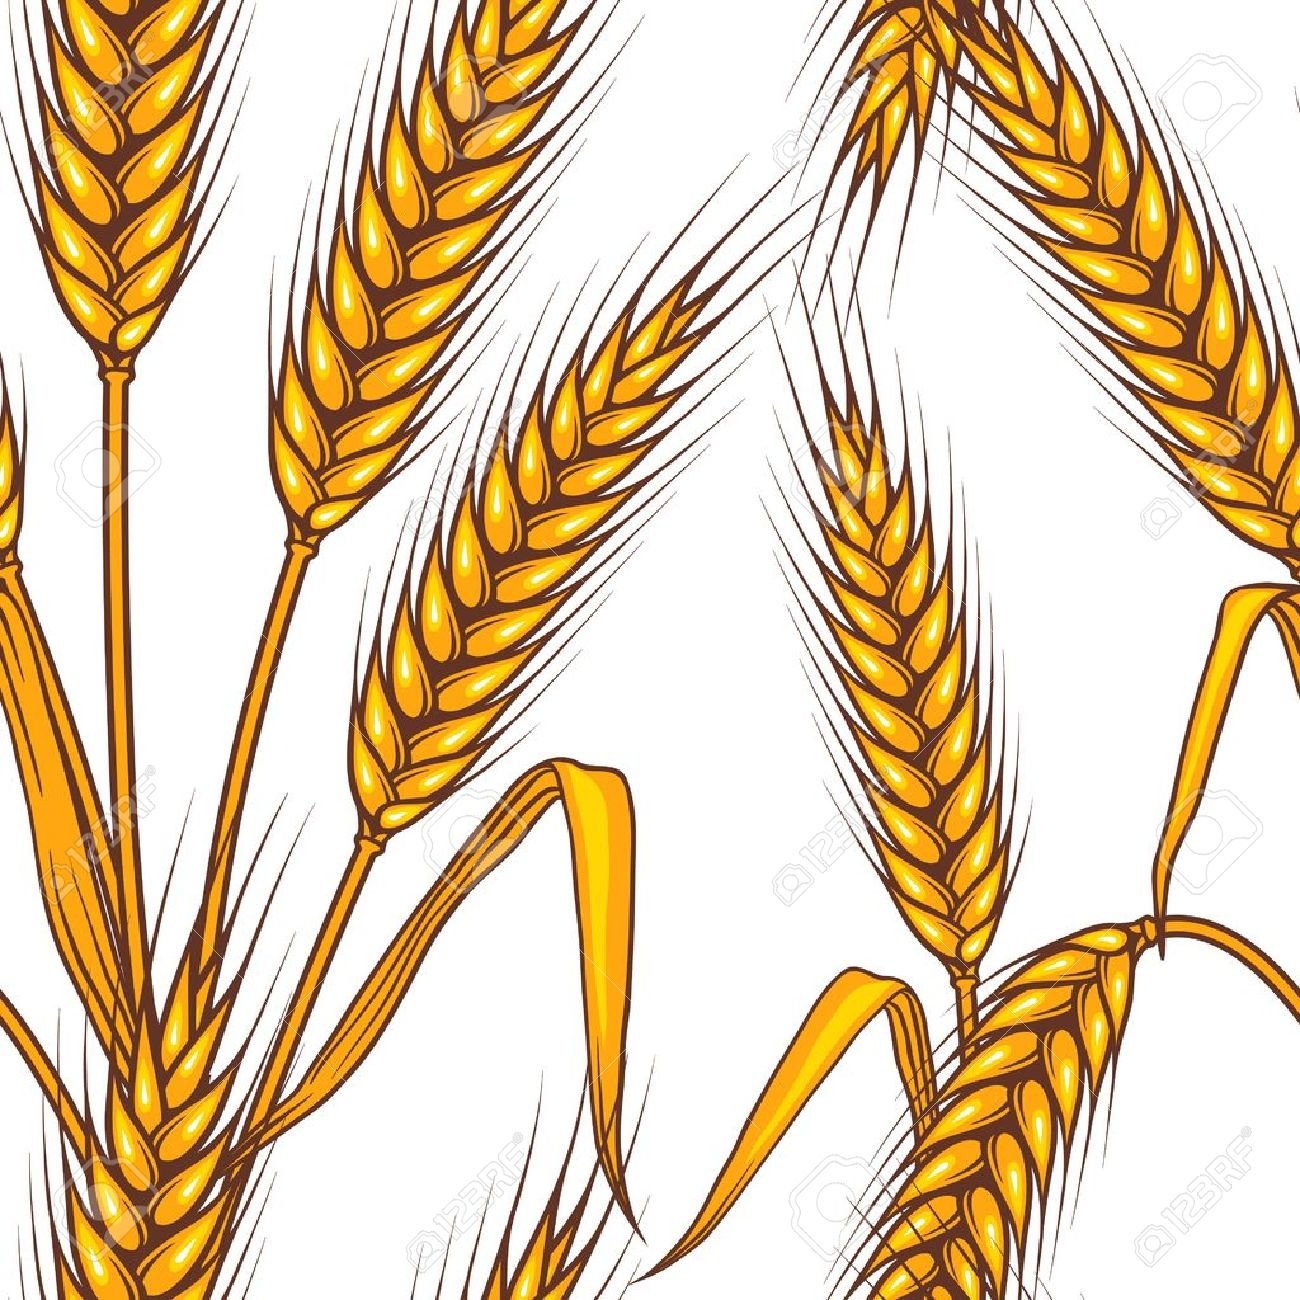 Wheat Field Drawing